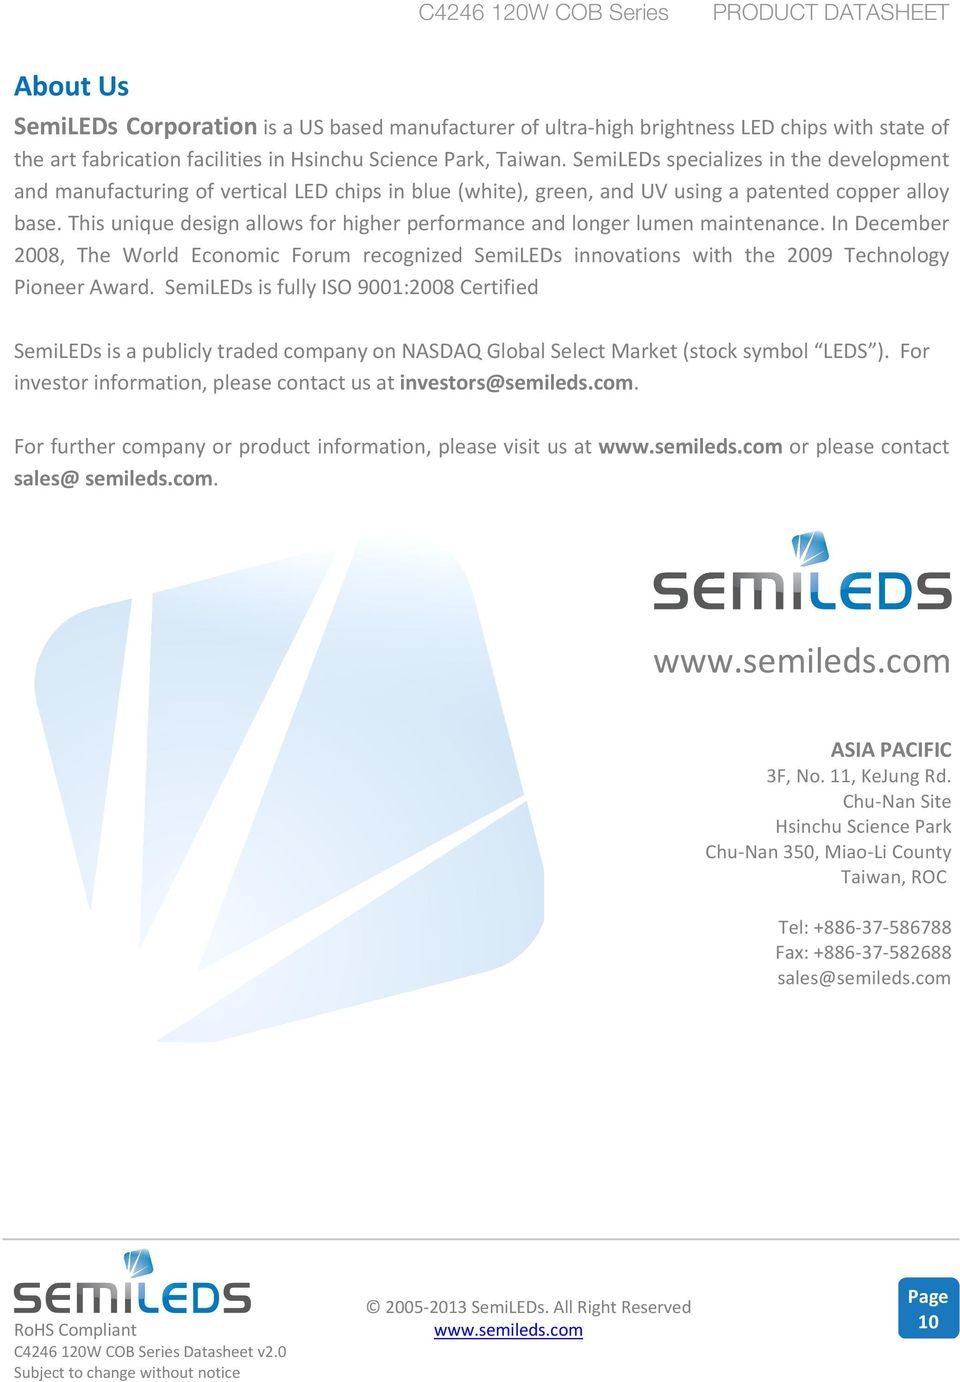 This unique design allows for higher performance and longer lumen maintenance. In December 2008, The World Economic Forum recognized SemiLEDs innovations with the 2009 Technology Pioneer Award.